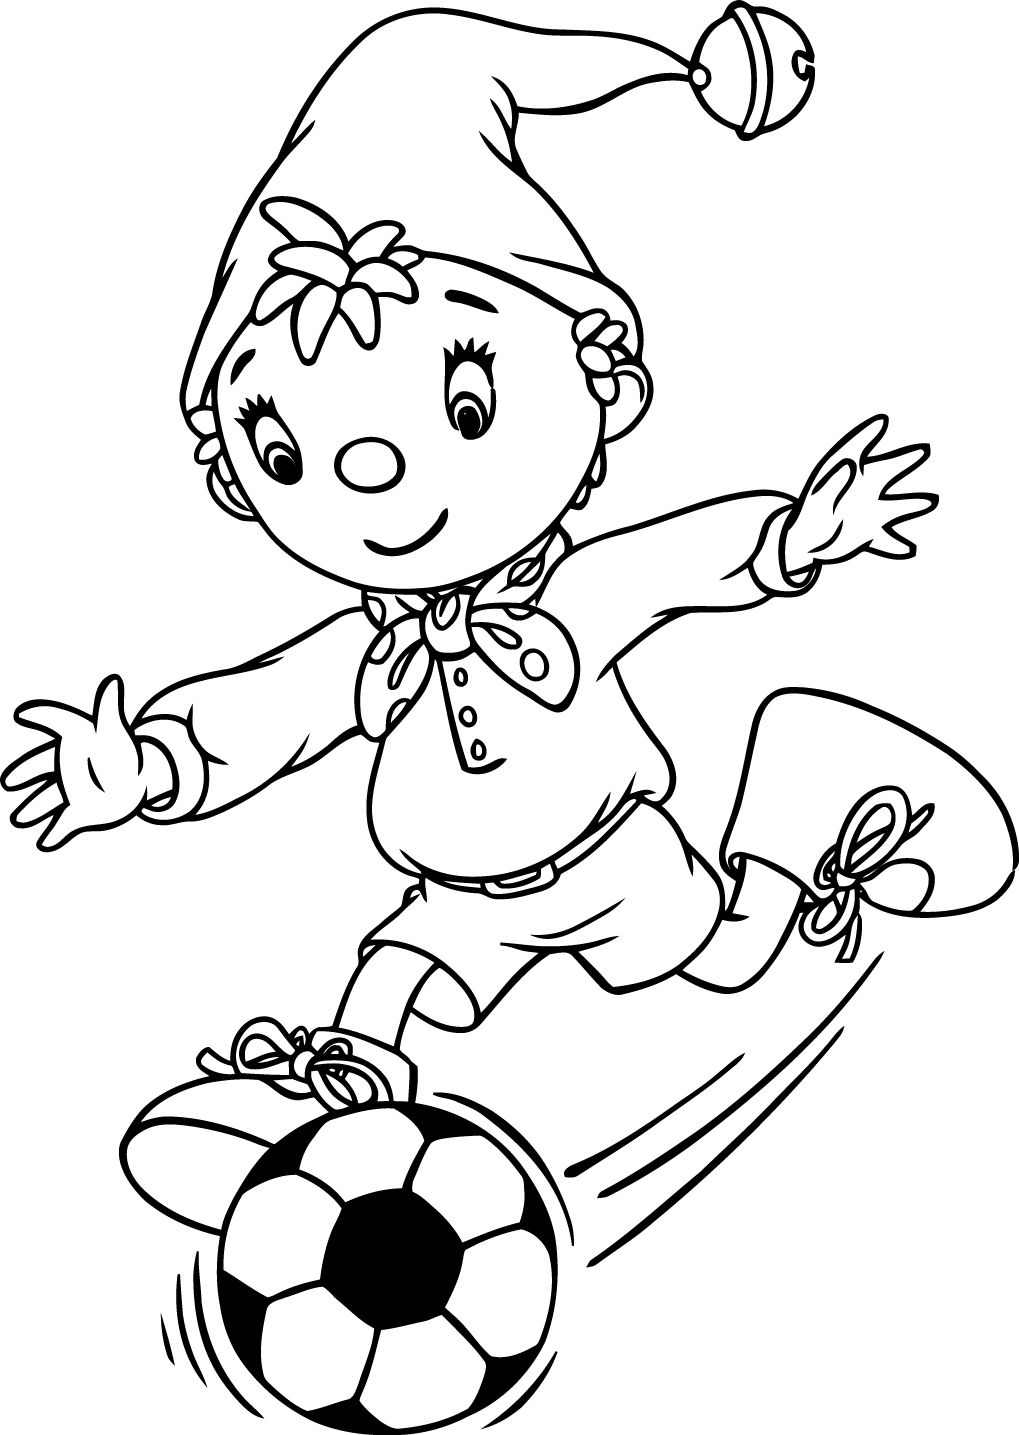 Noddy 97 Play Football Coloring Page Football Coloring Pages